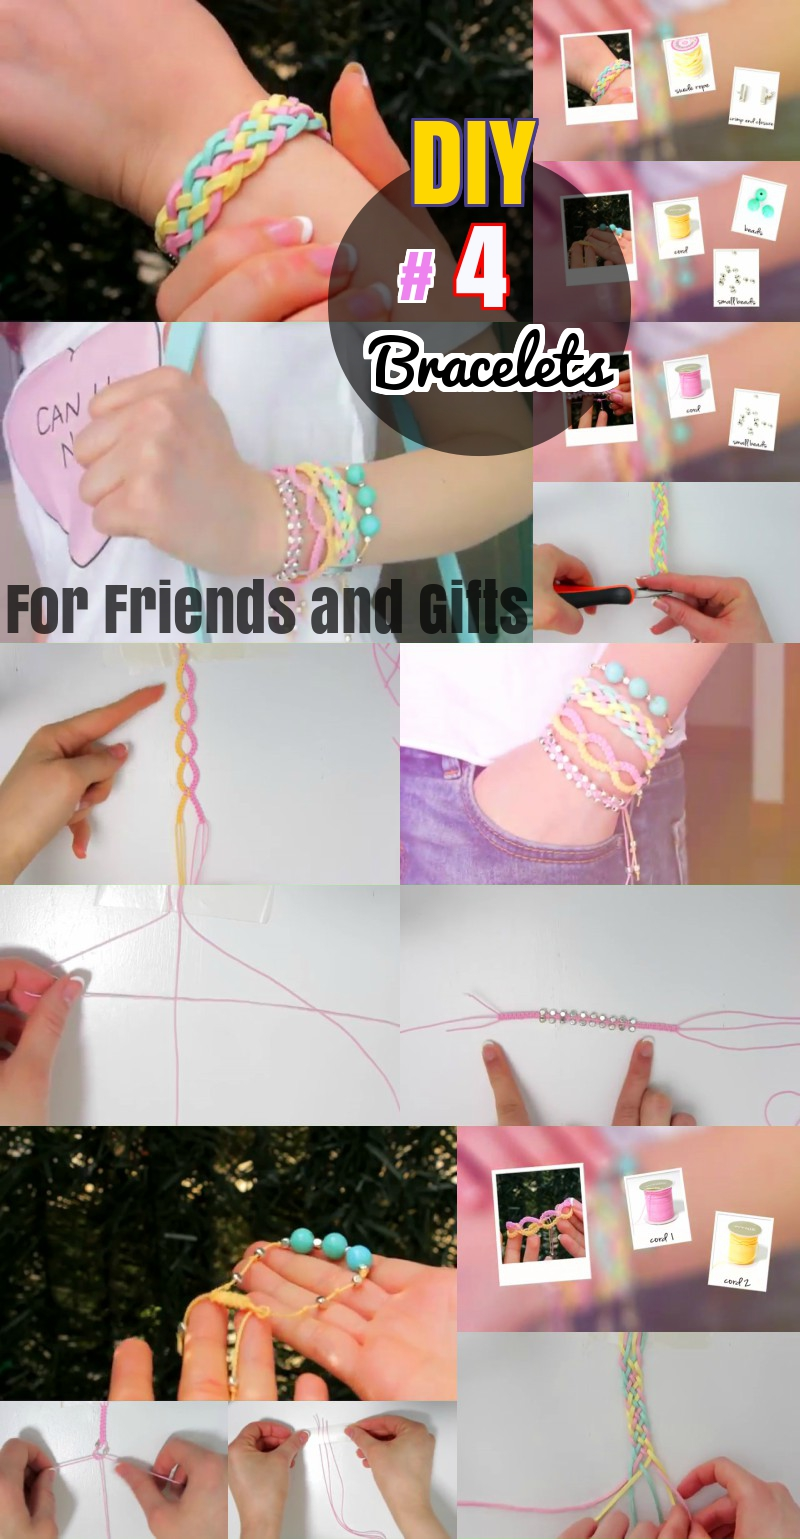 DIY bracelet craft ideas for gift and friends